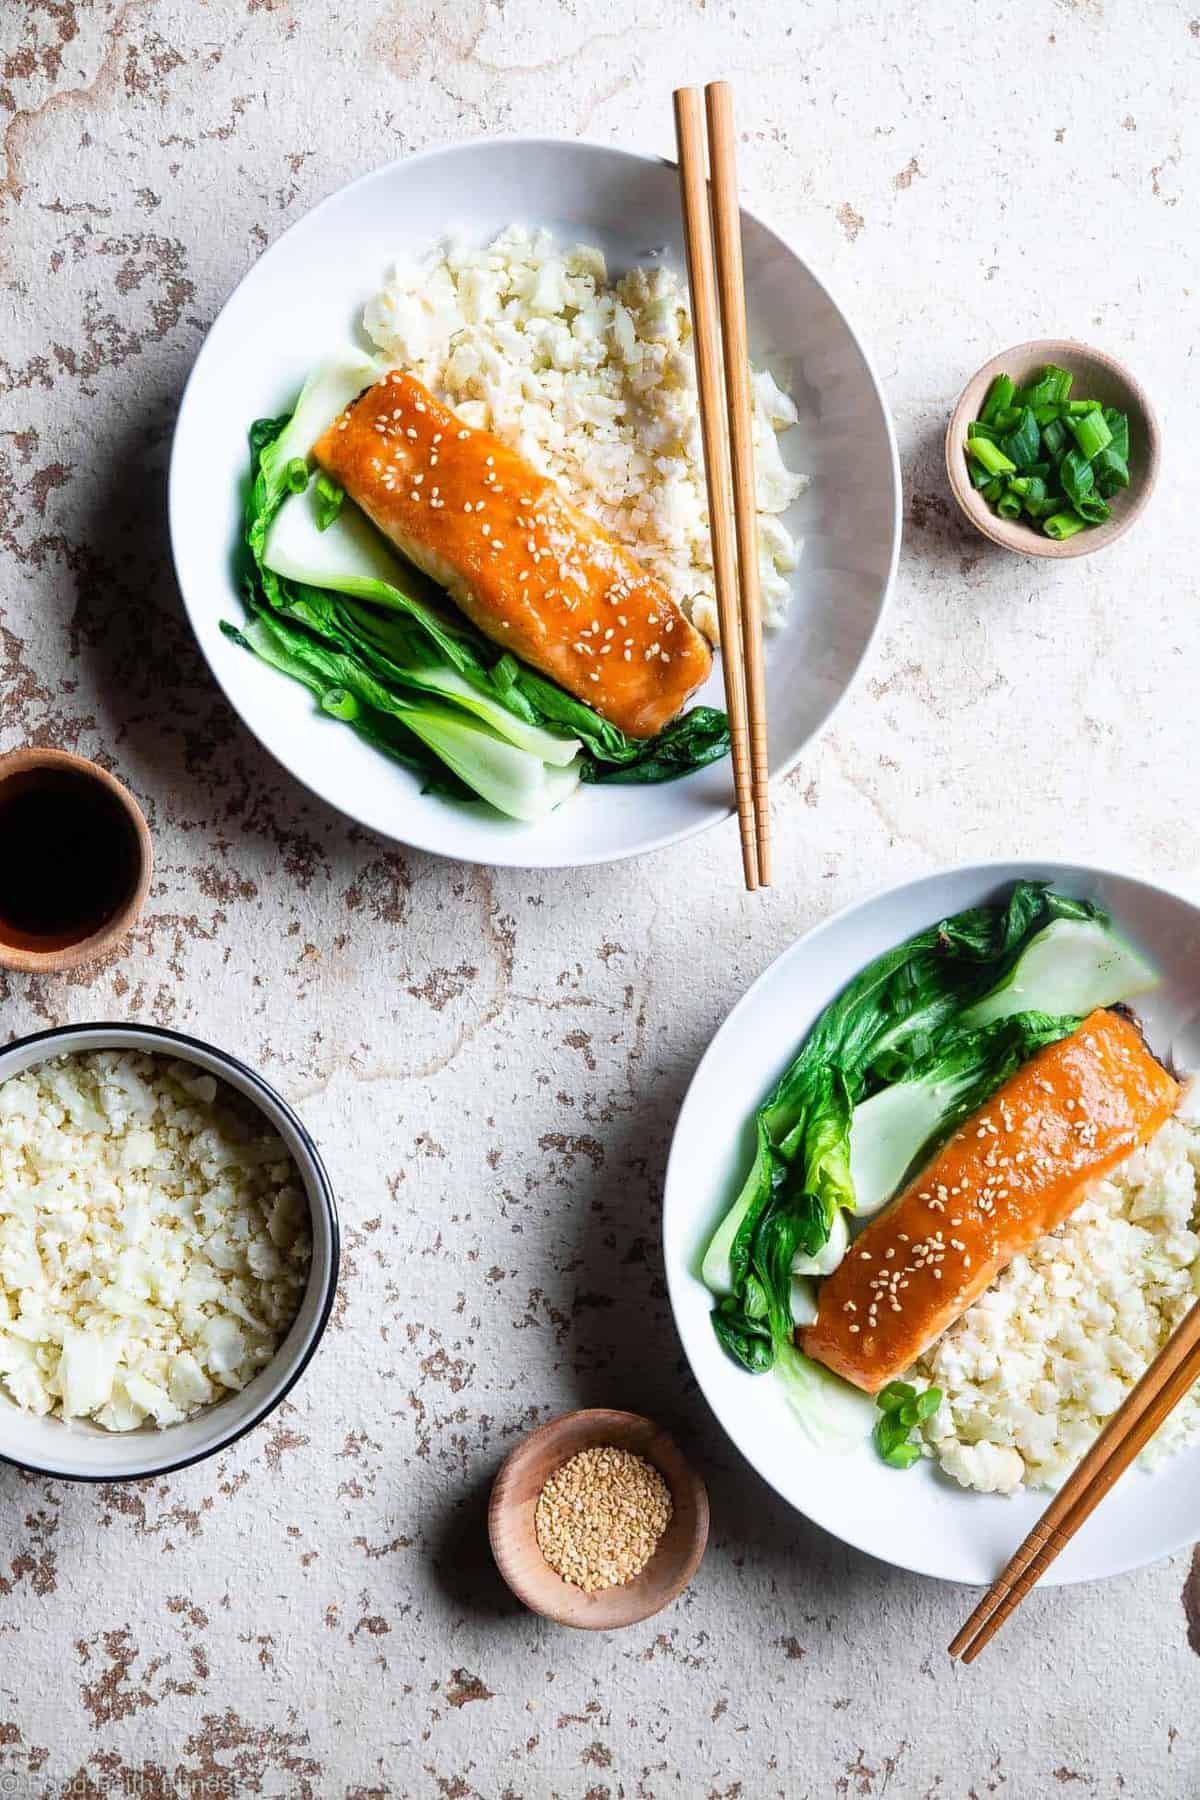 Honey Sriracha Miso Glazed Salmon - An easy, 15 minute weeknight dinner that is big on spicy-sweet asian flavor! A gluten free meal you'll make over and over! Only one Weight Watchers SmartPoint too! | #Foodfaithfitness | #Glutenfree #Lowcarb #Keto #Healthy #Dairyfree